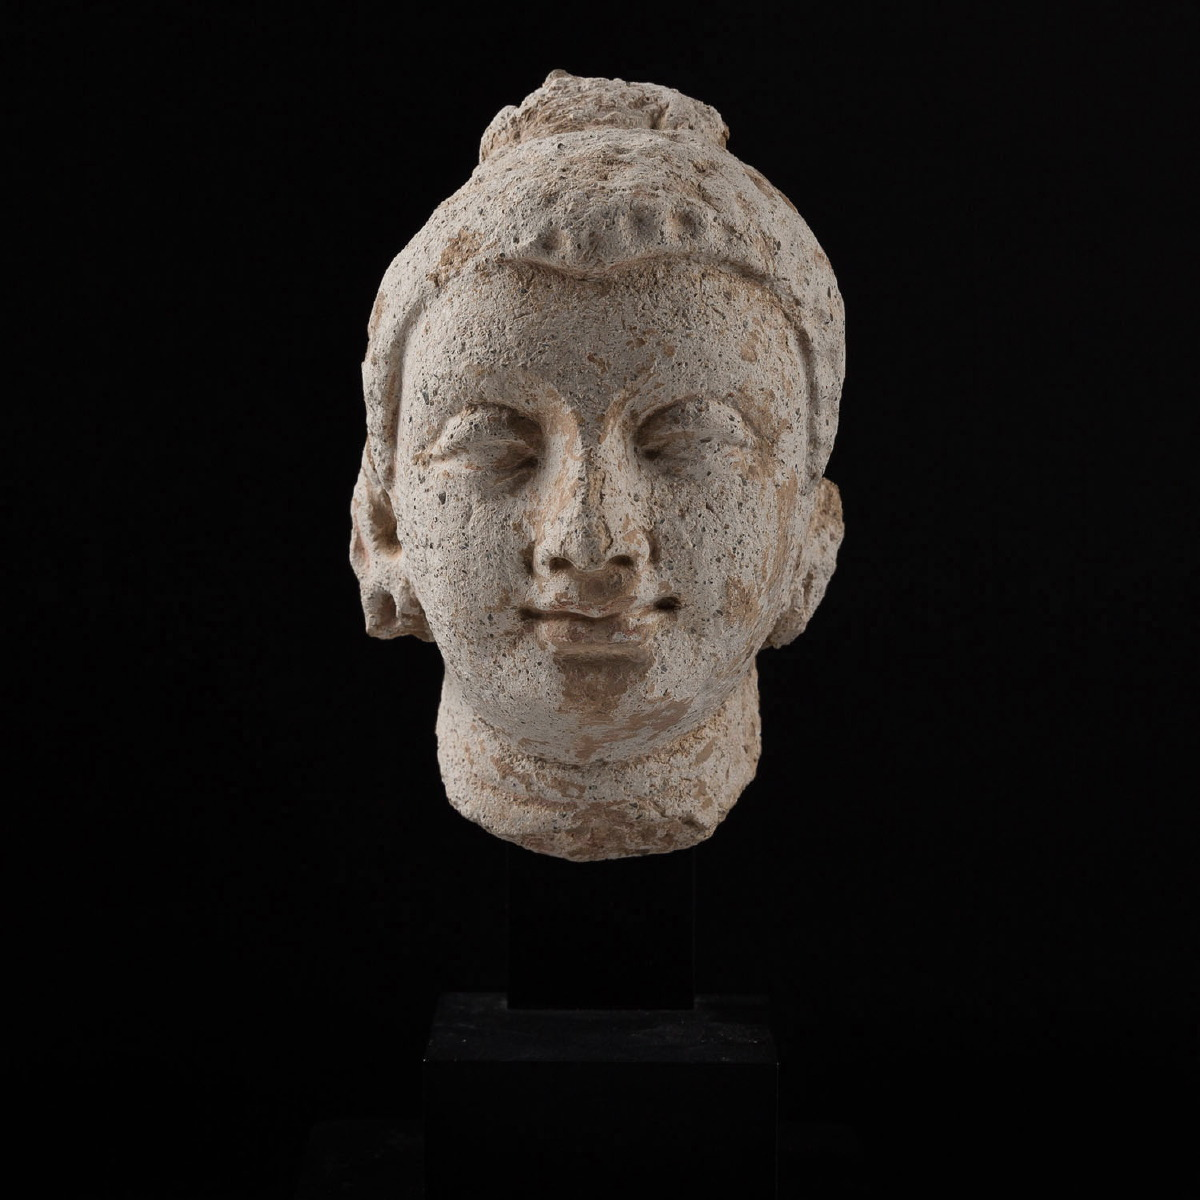 Photo of a-stucco-head-of-bodhisattva-gandhara-3rd-4th-century